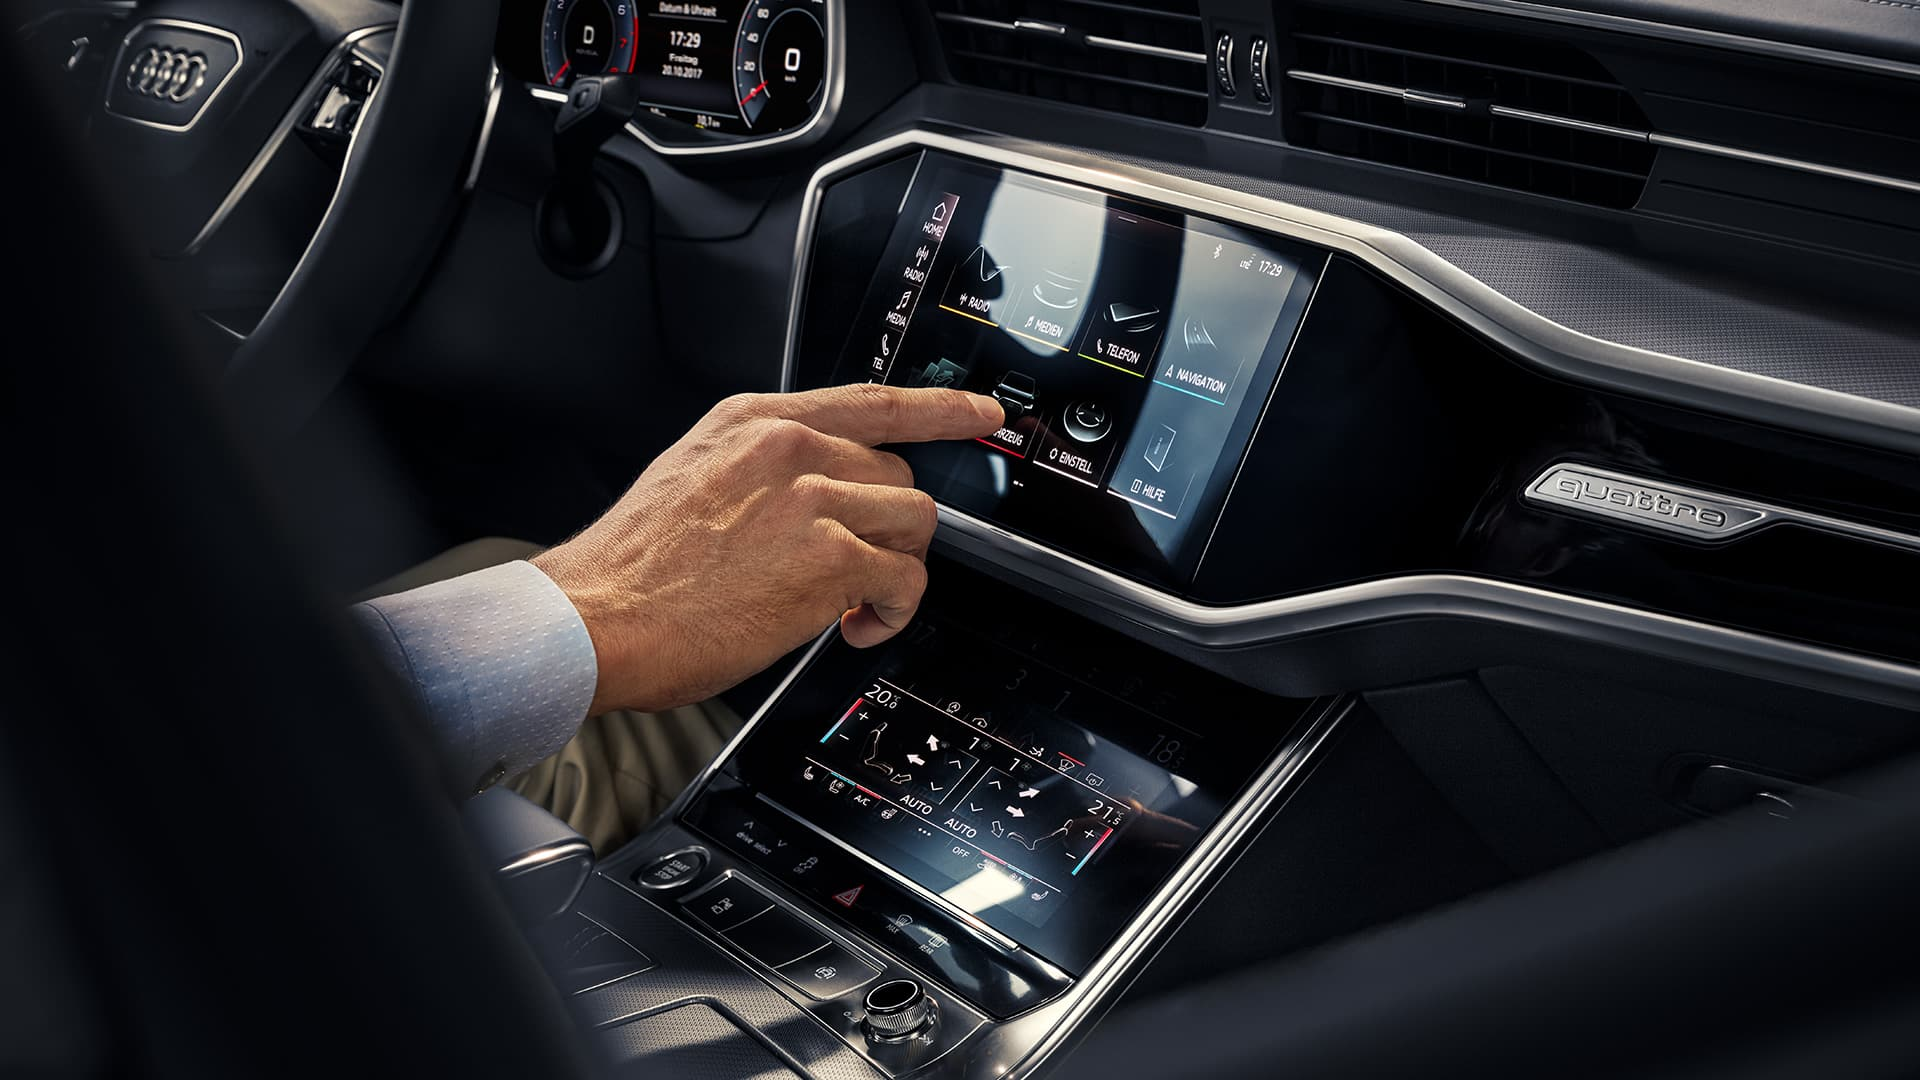 Audi connect met MMI touch response-technologie